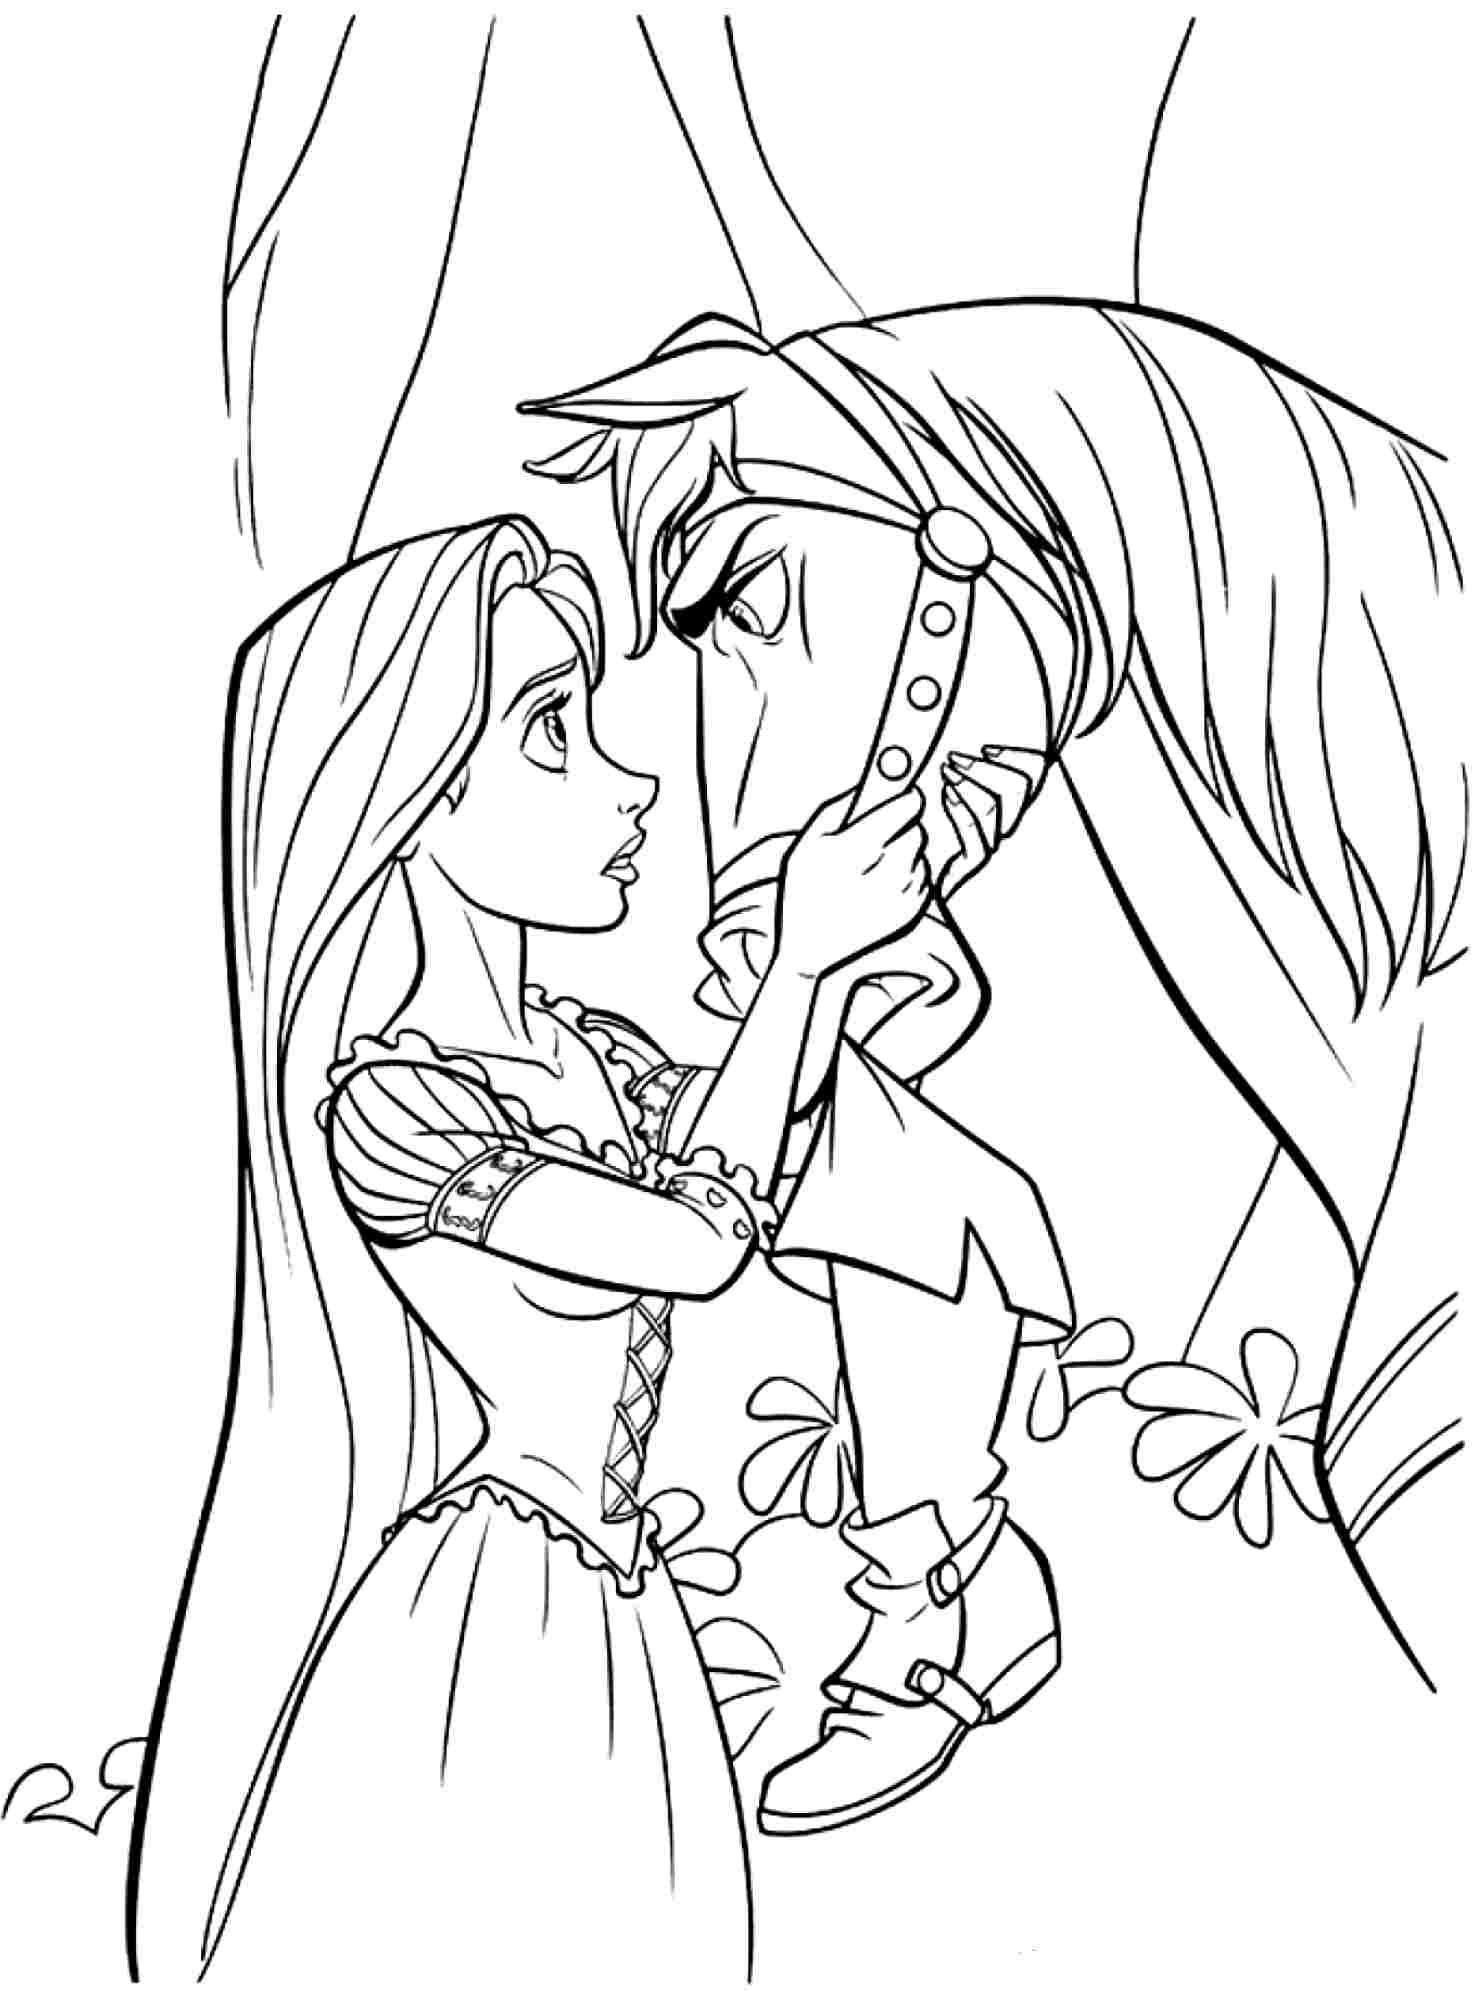 free disney princess tangled rapunzel coloring sheets for kids